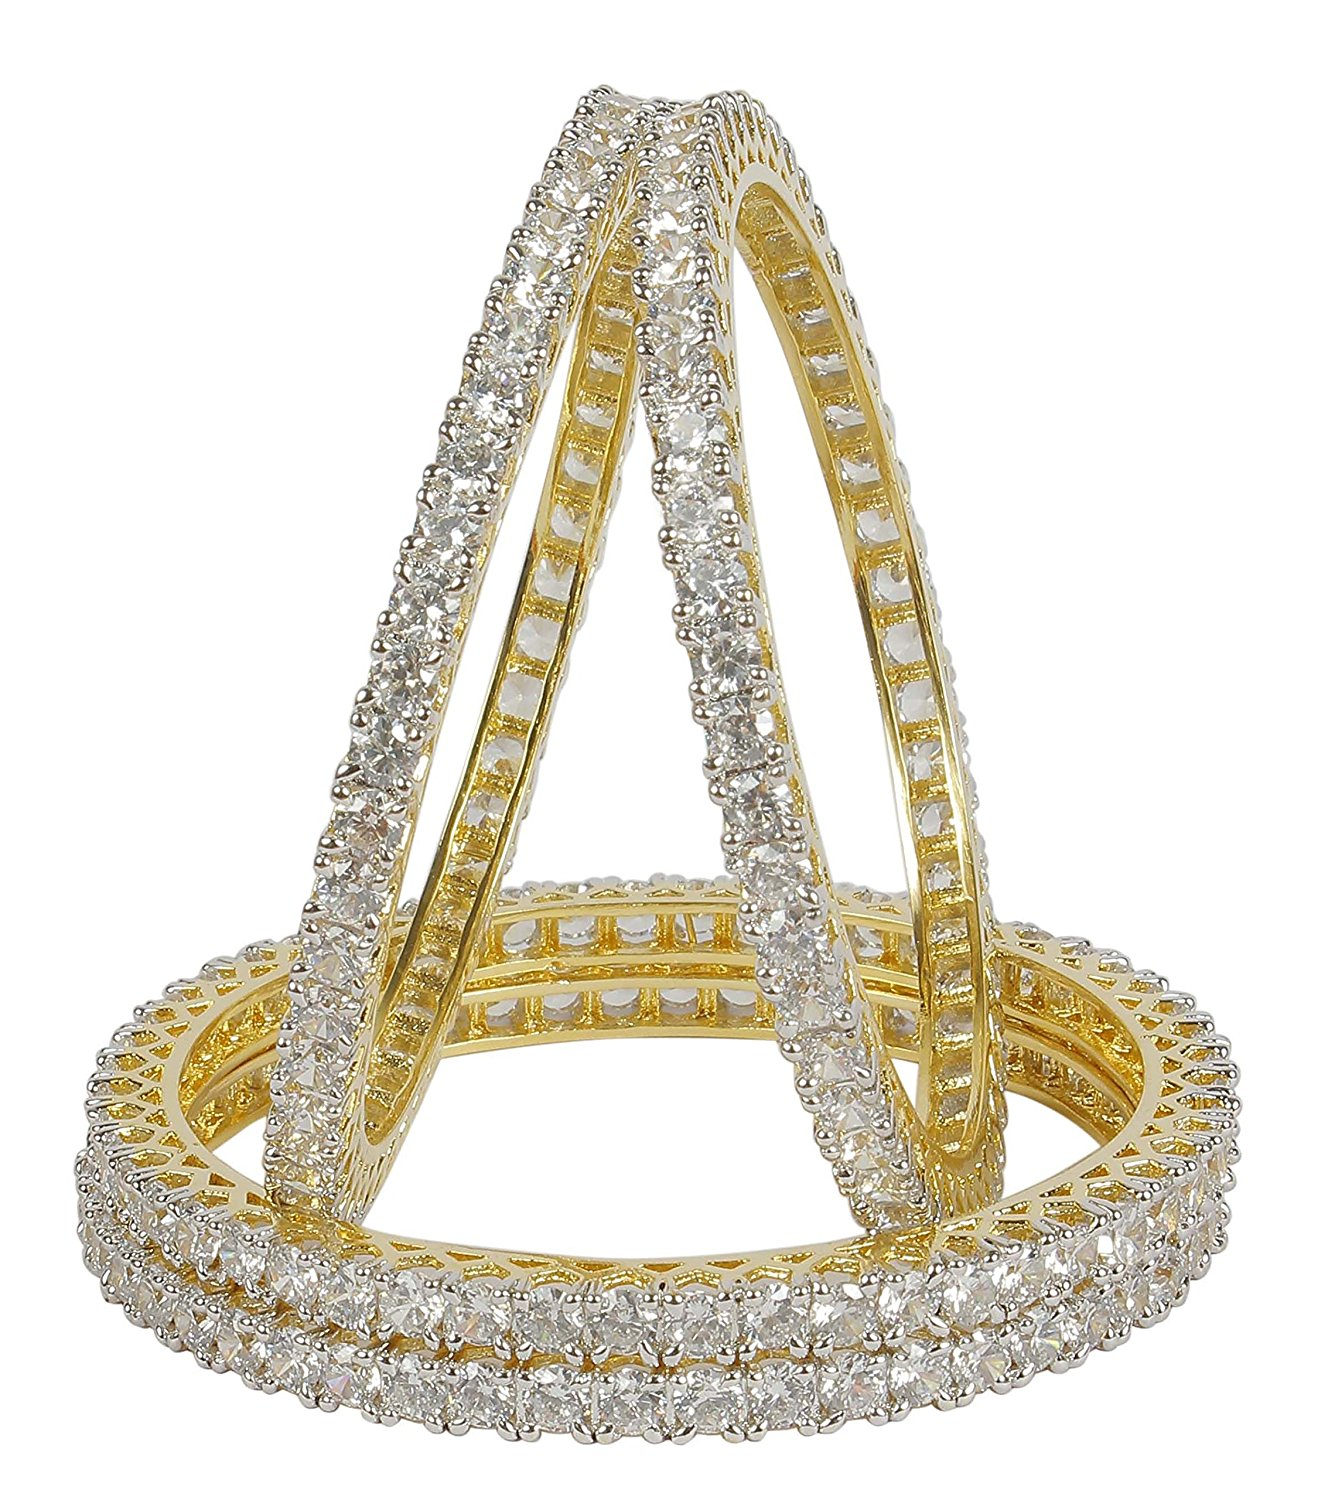 776796480 The Best Online Store for Jewelry, Accessories, and Home Decor